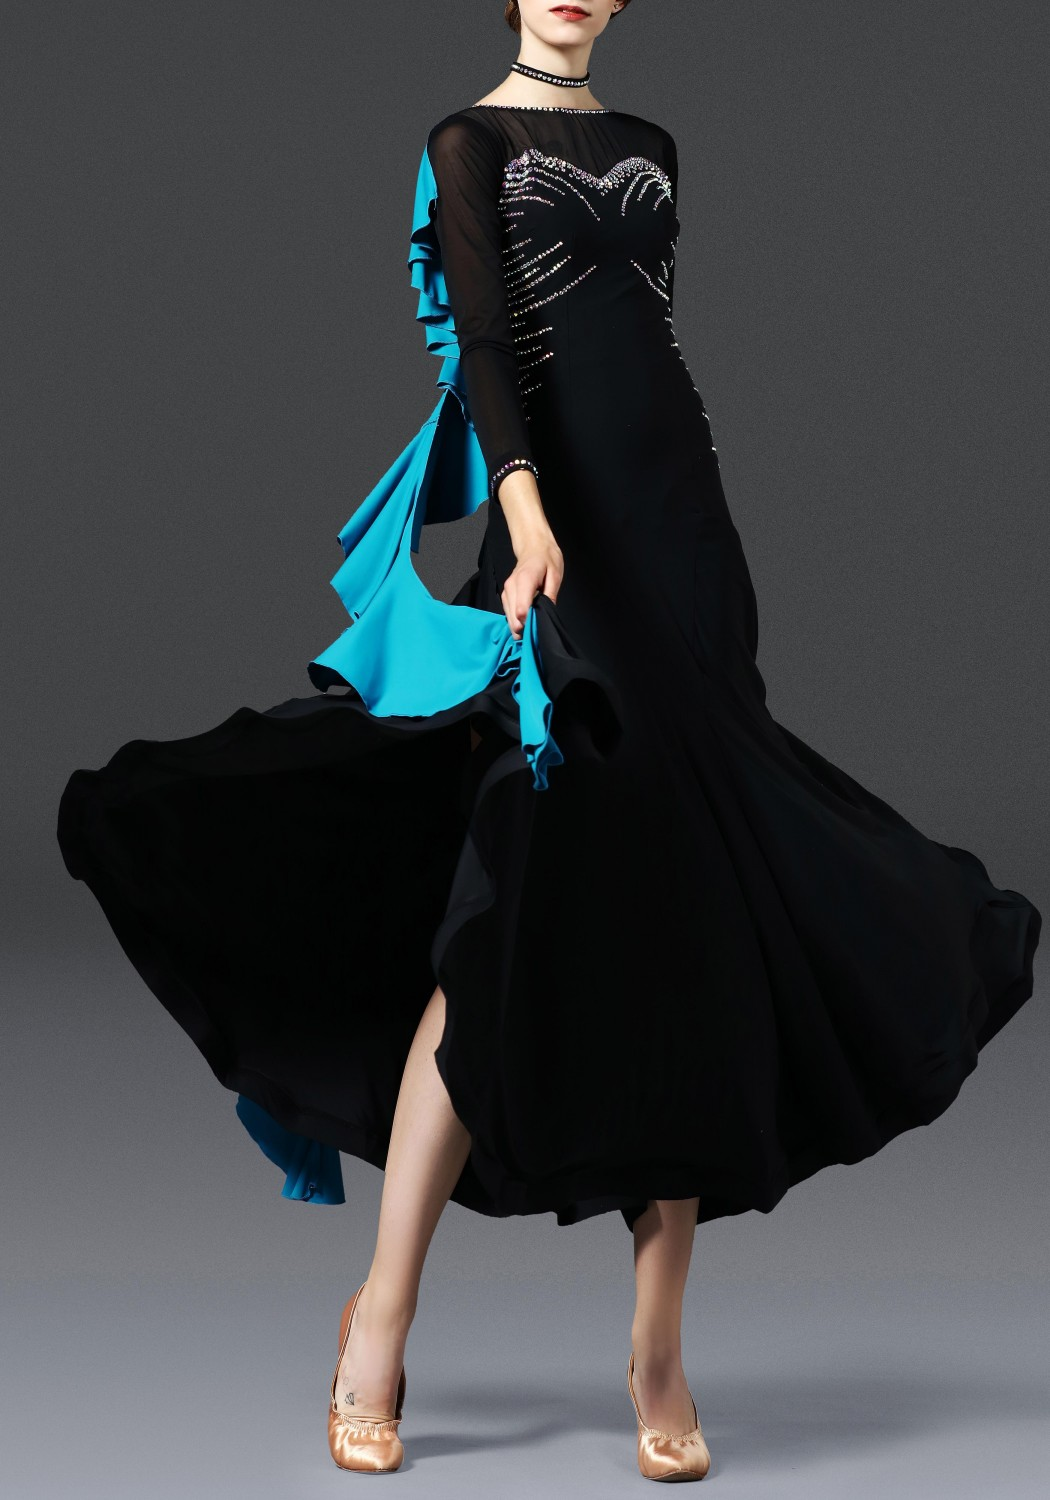 Black with Turquoise Ballroom Smooth Practice Dance Dress